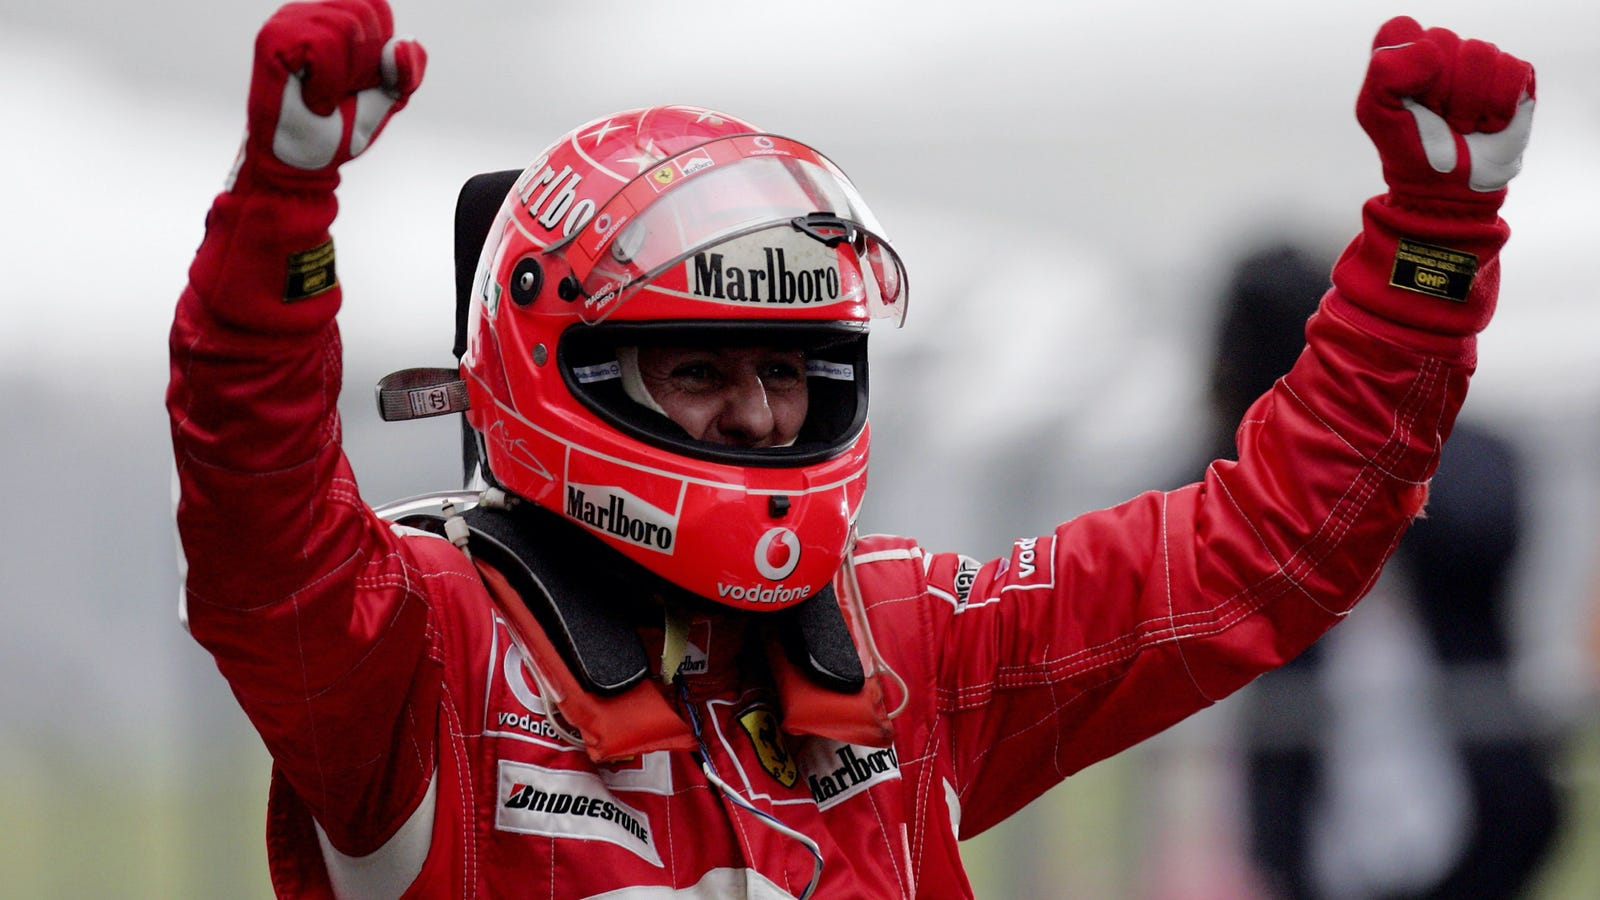 michael schumacher - photo #20